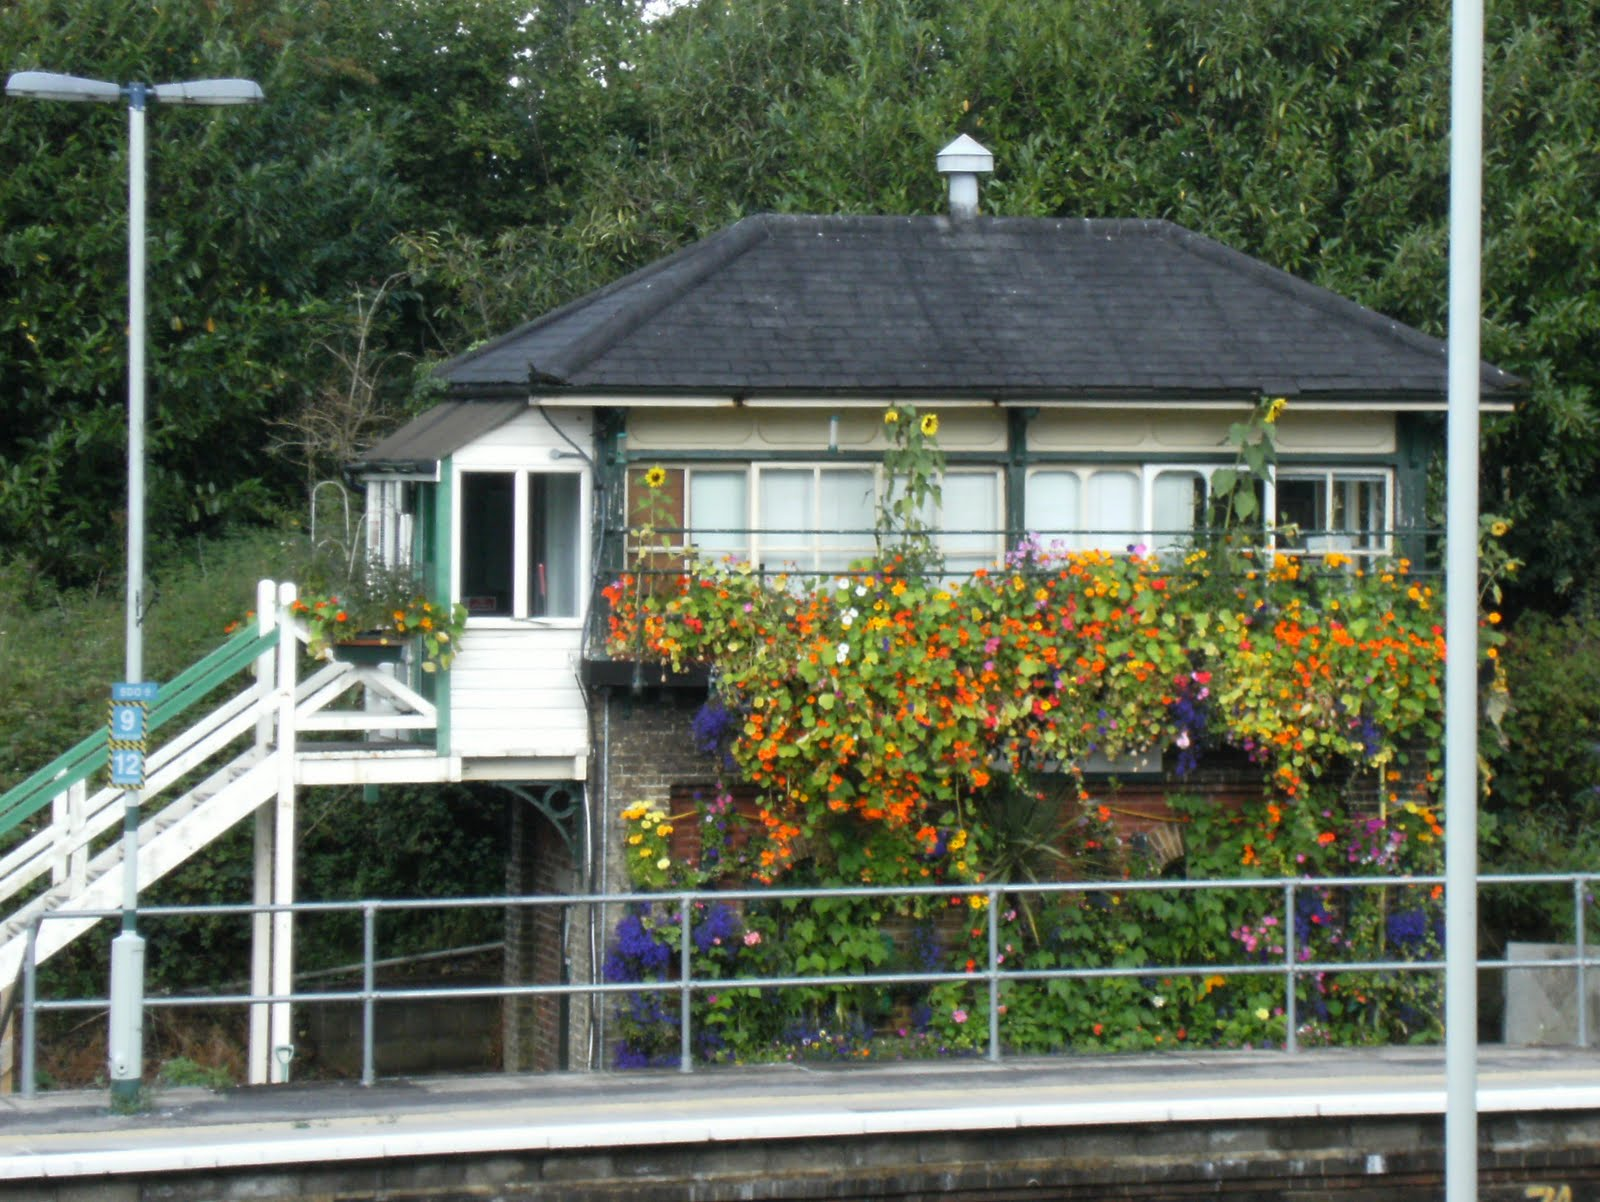 DSCF9264 Pulborough signal box